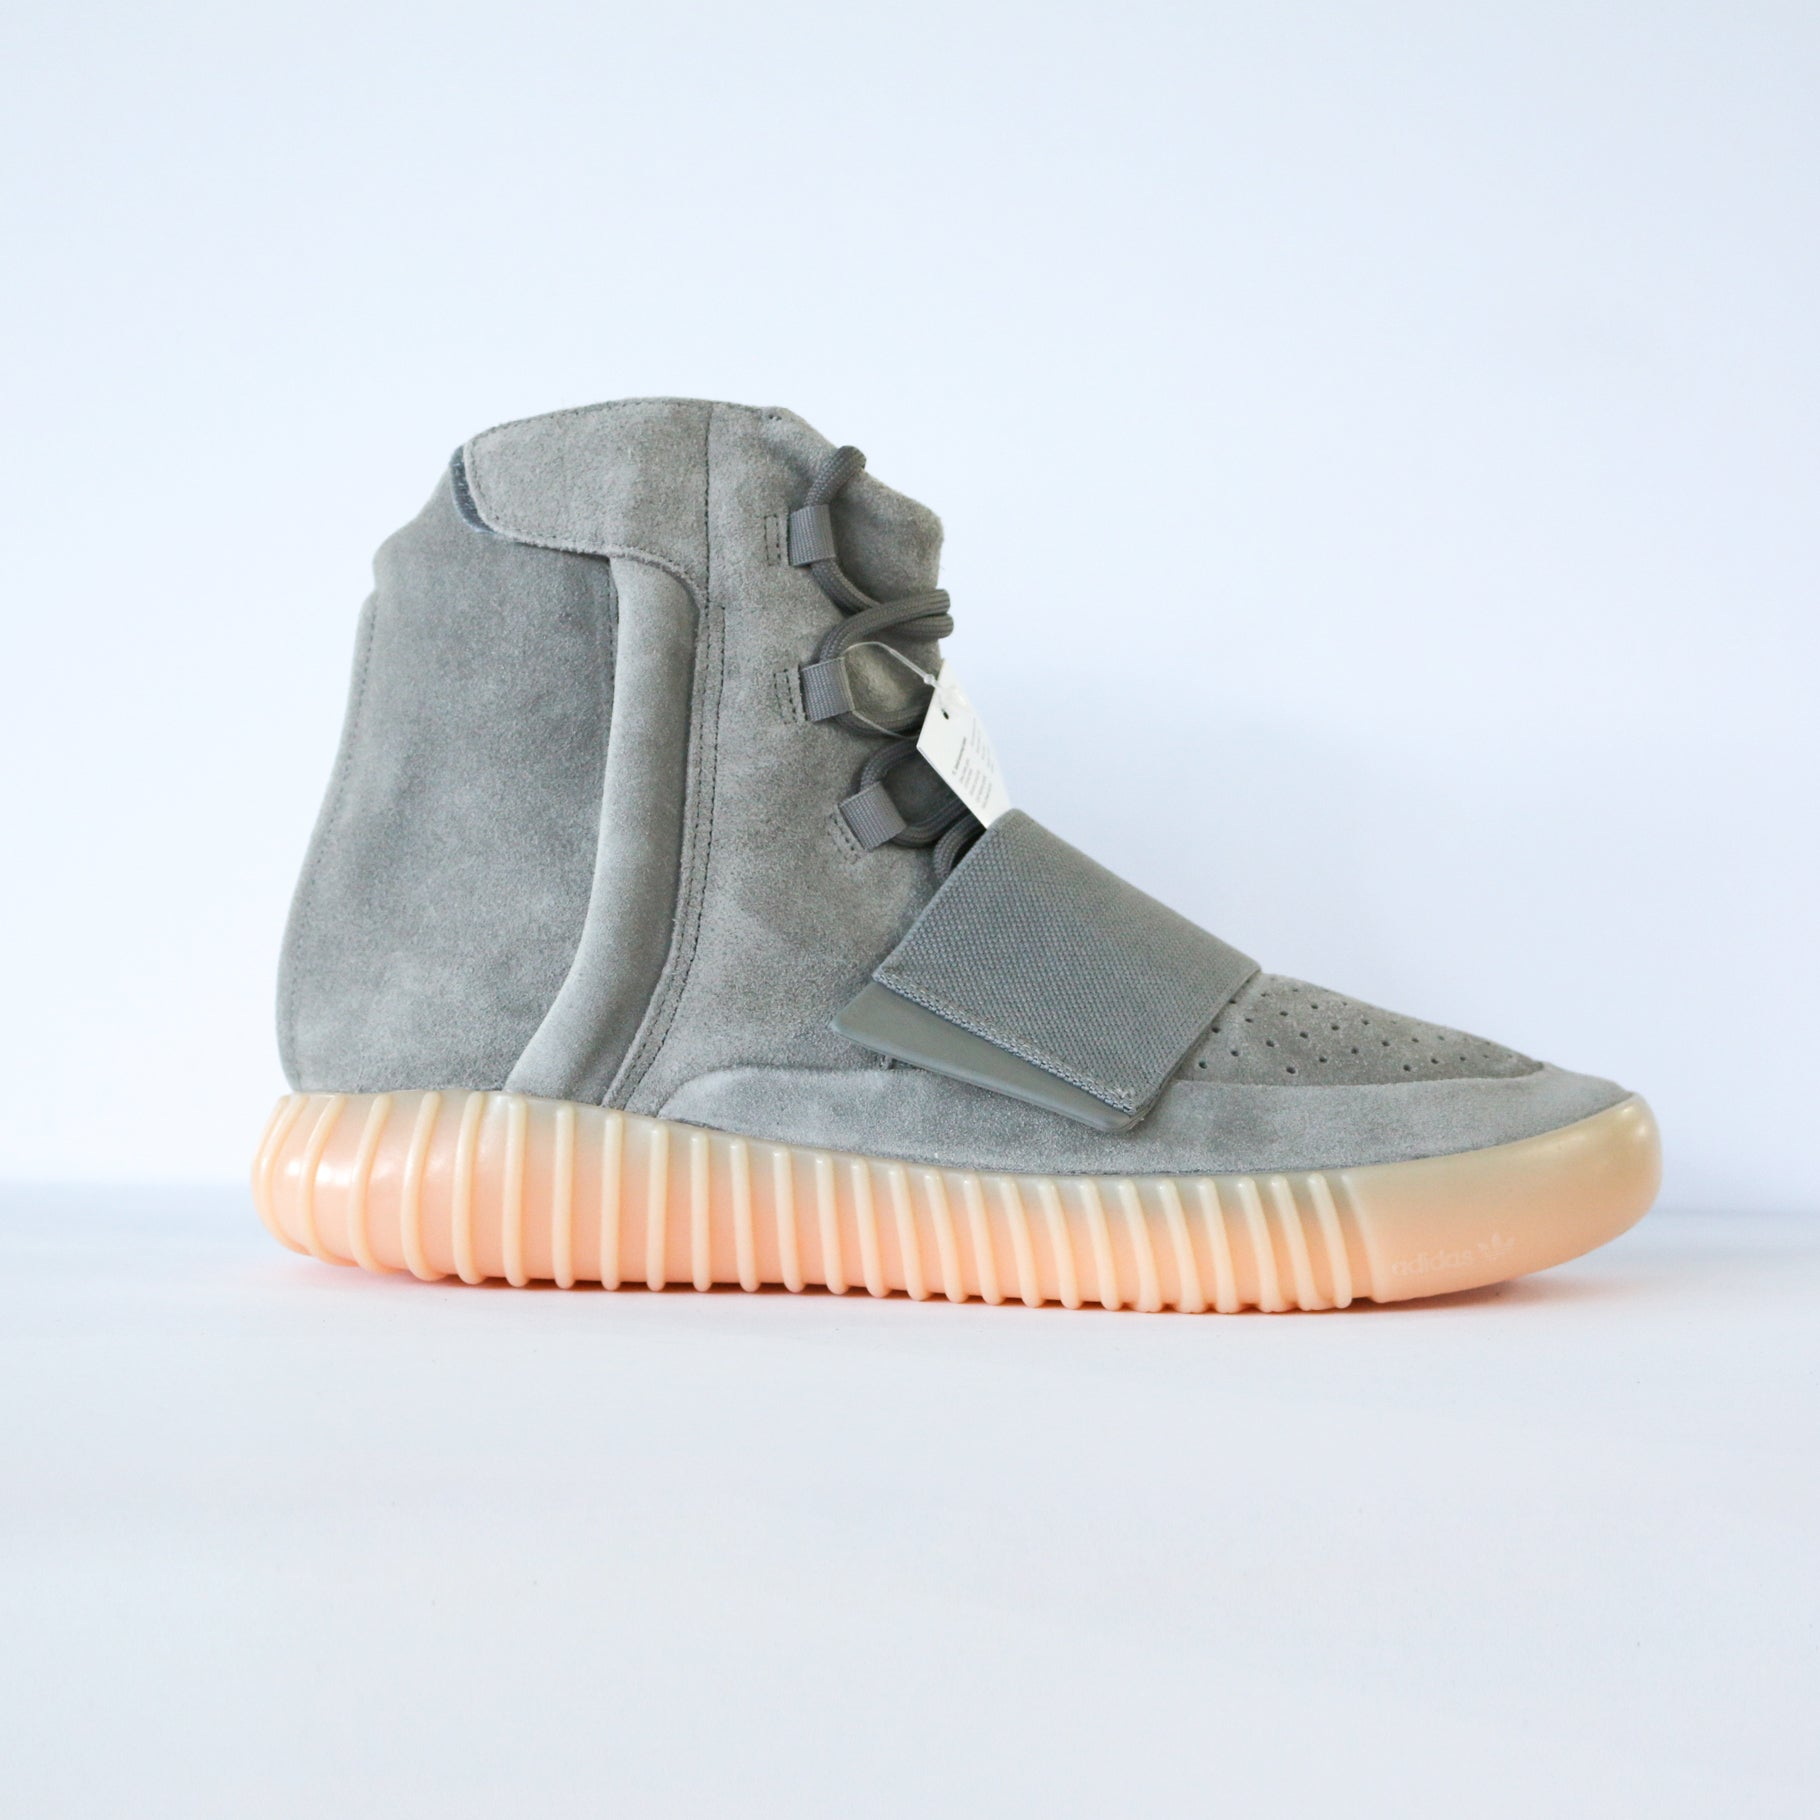 low priced b4a5e 02aec Yeezy Boost 750